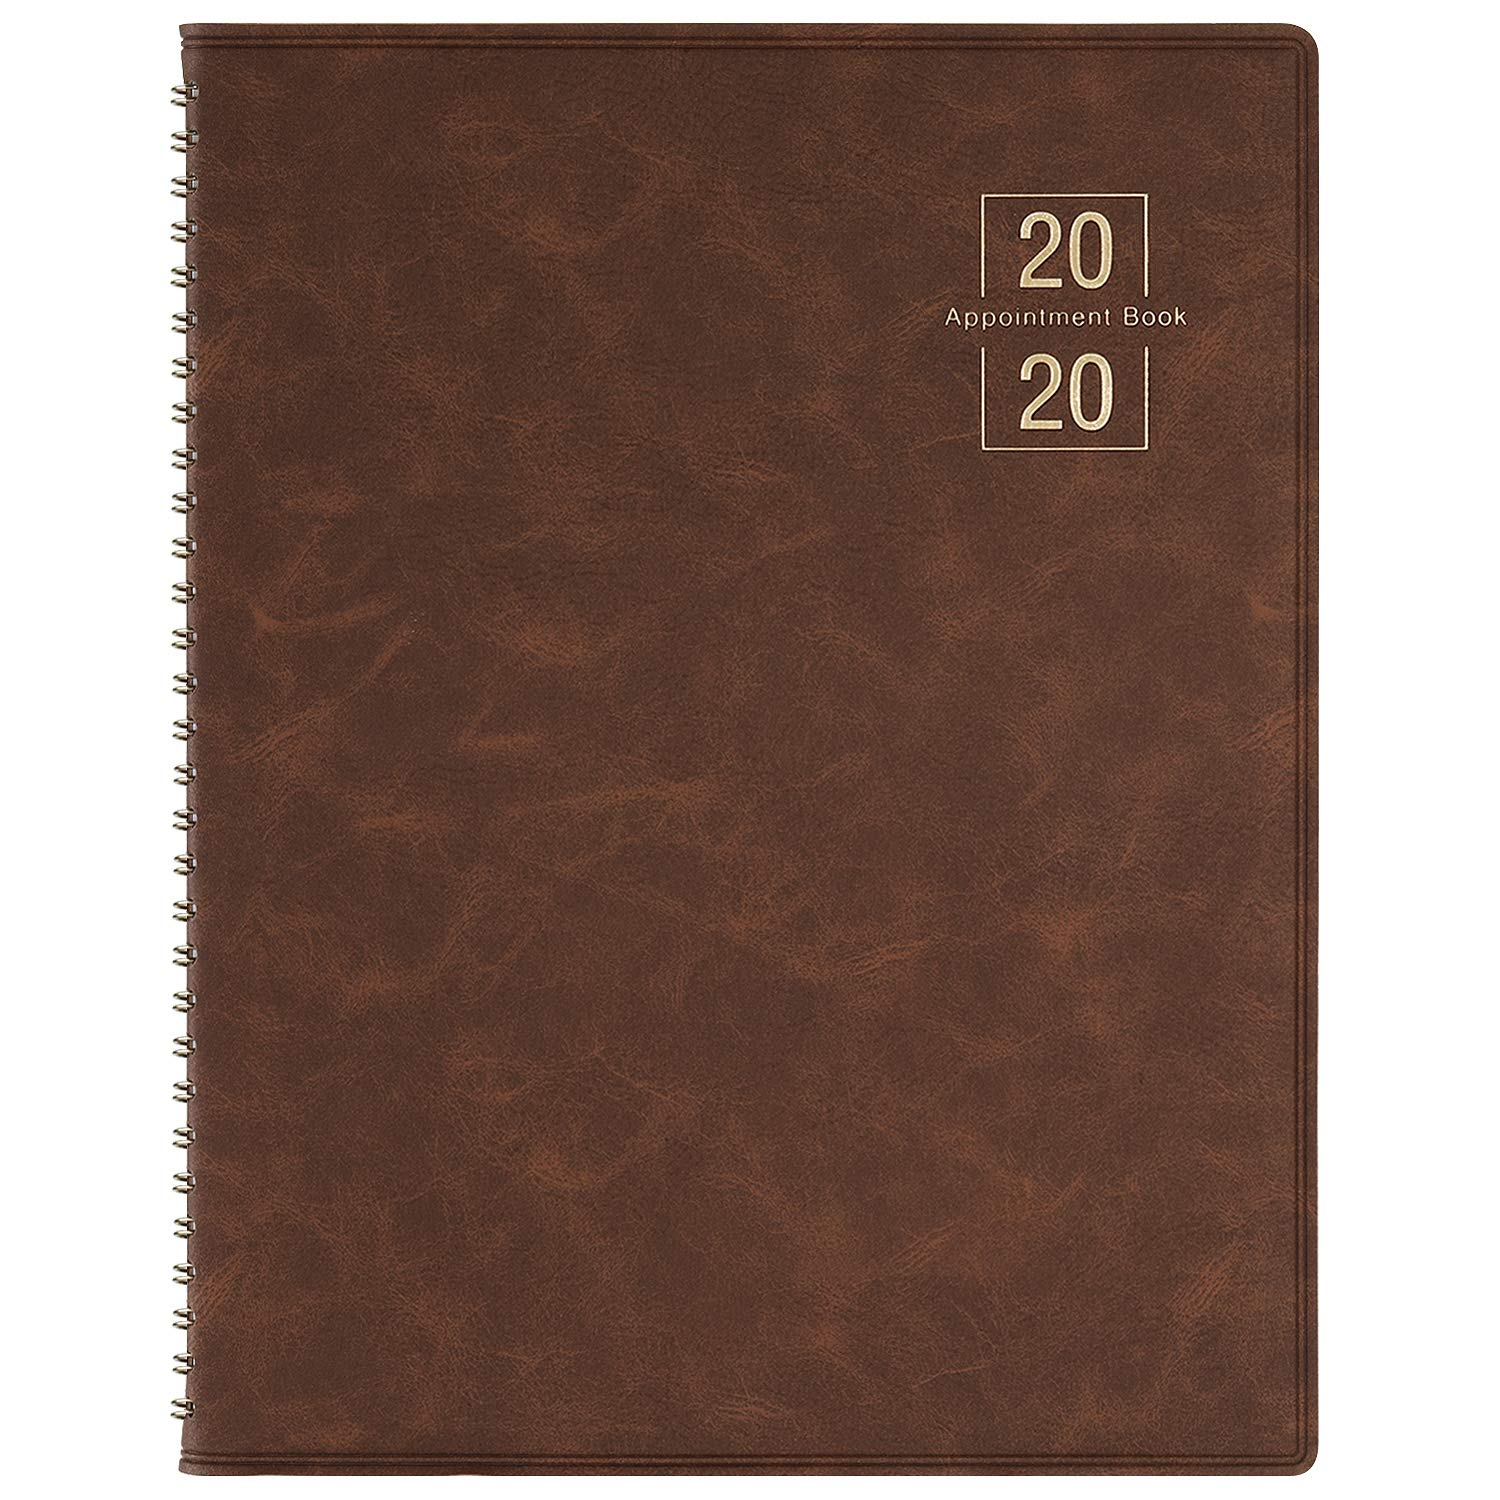 2020 Weekly Appointment Book/Planner - 53 Weeks Daily Planner Organizer, 15-Minute Increments, Flexible Cover, Twin-Wire Binding, 8.5